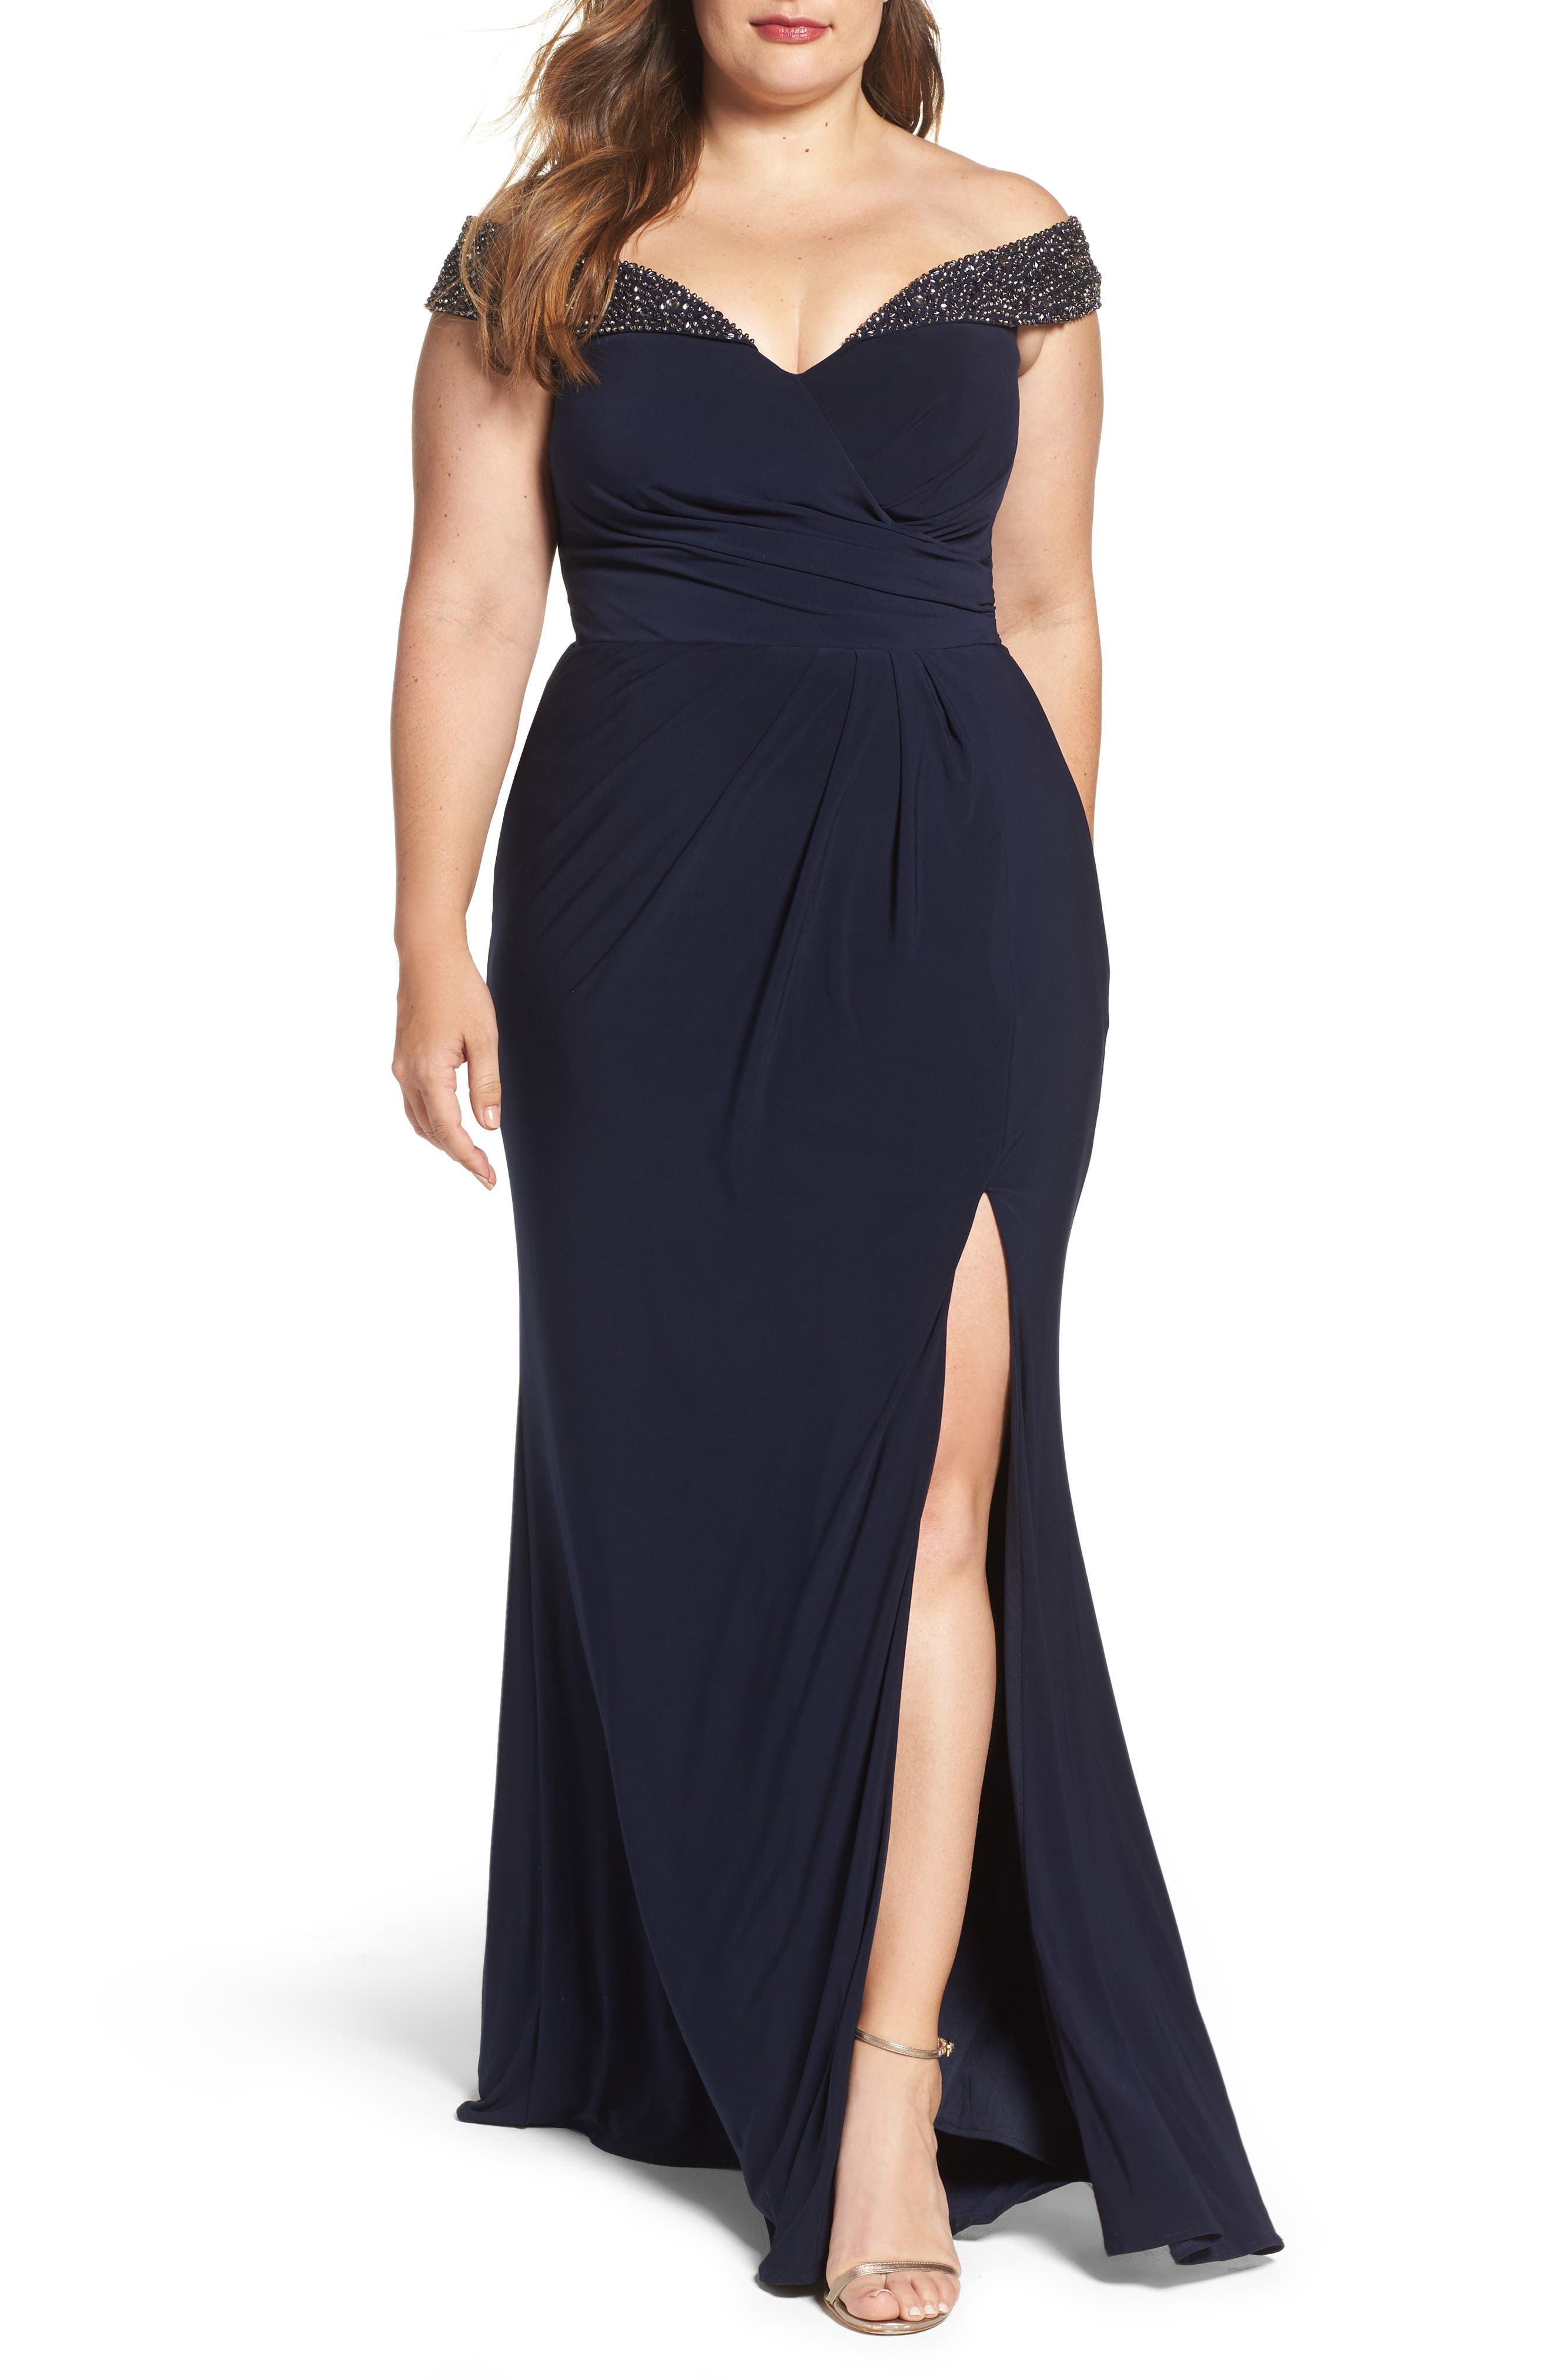 Alternate Image 1 Selected - Xscape Embellished Off the Shoulder Gown (Plus Size)